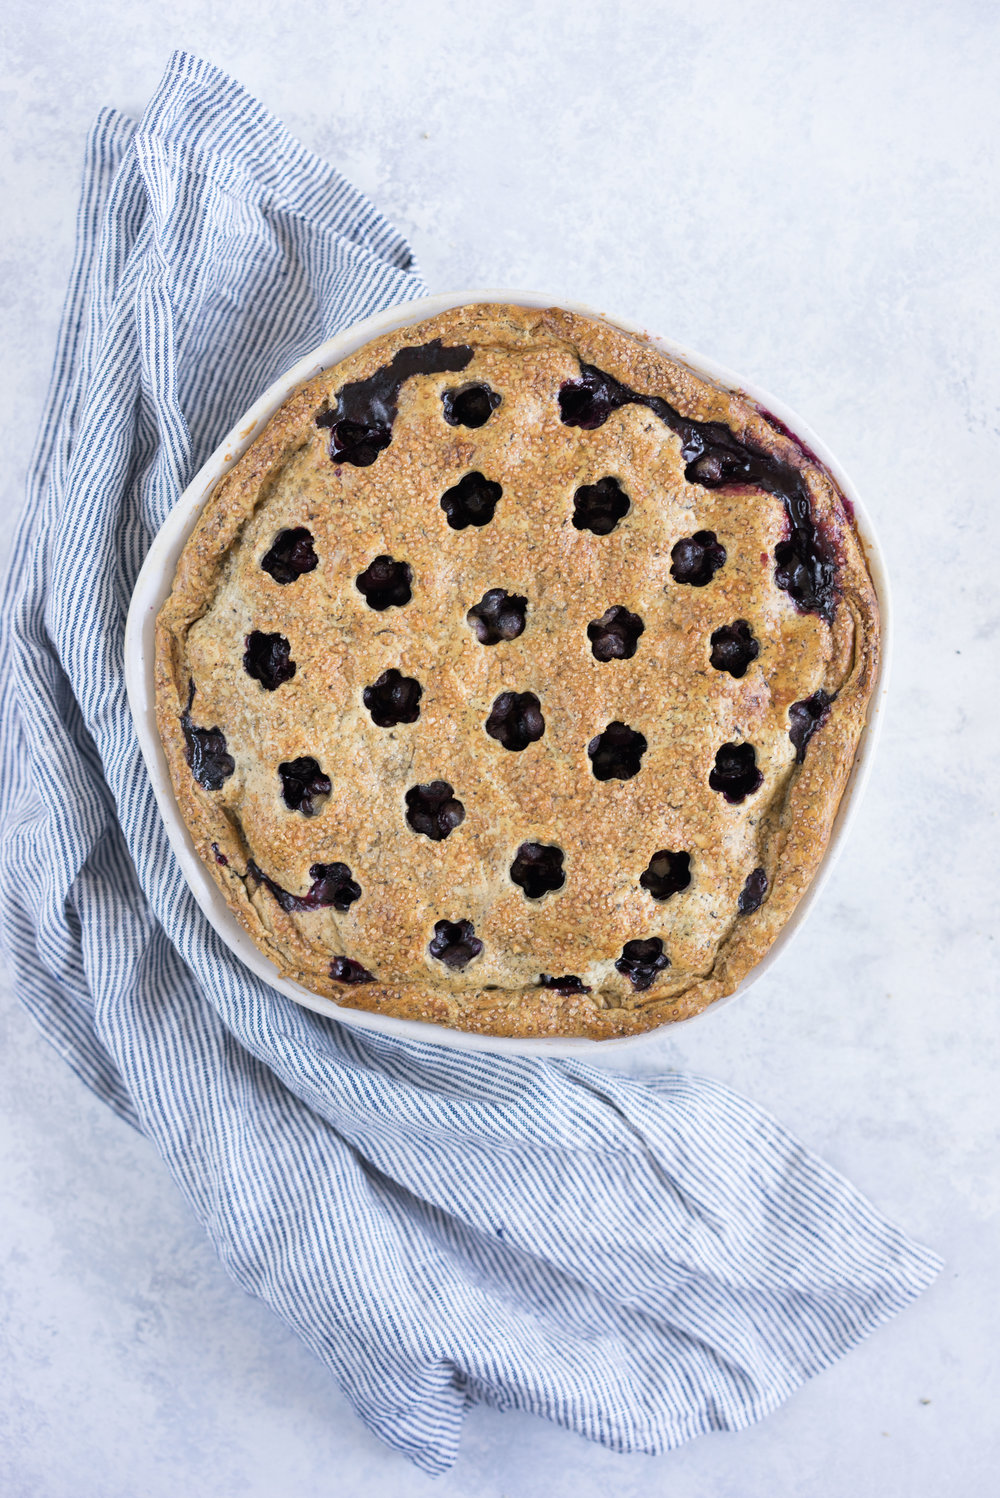 Earl grey blueberry pie